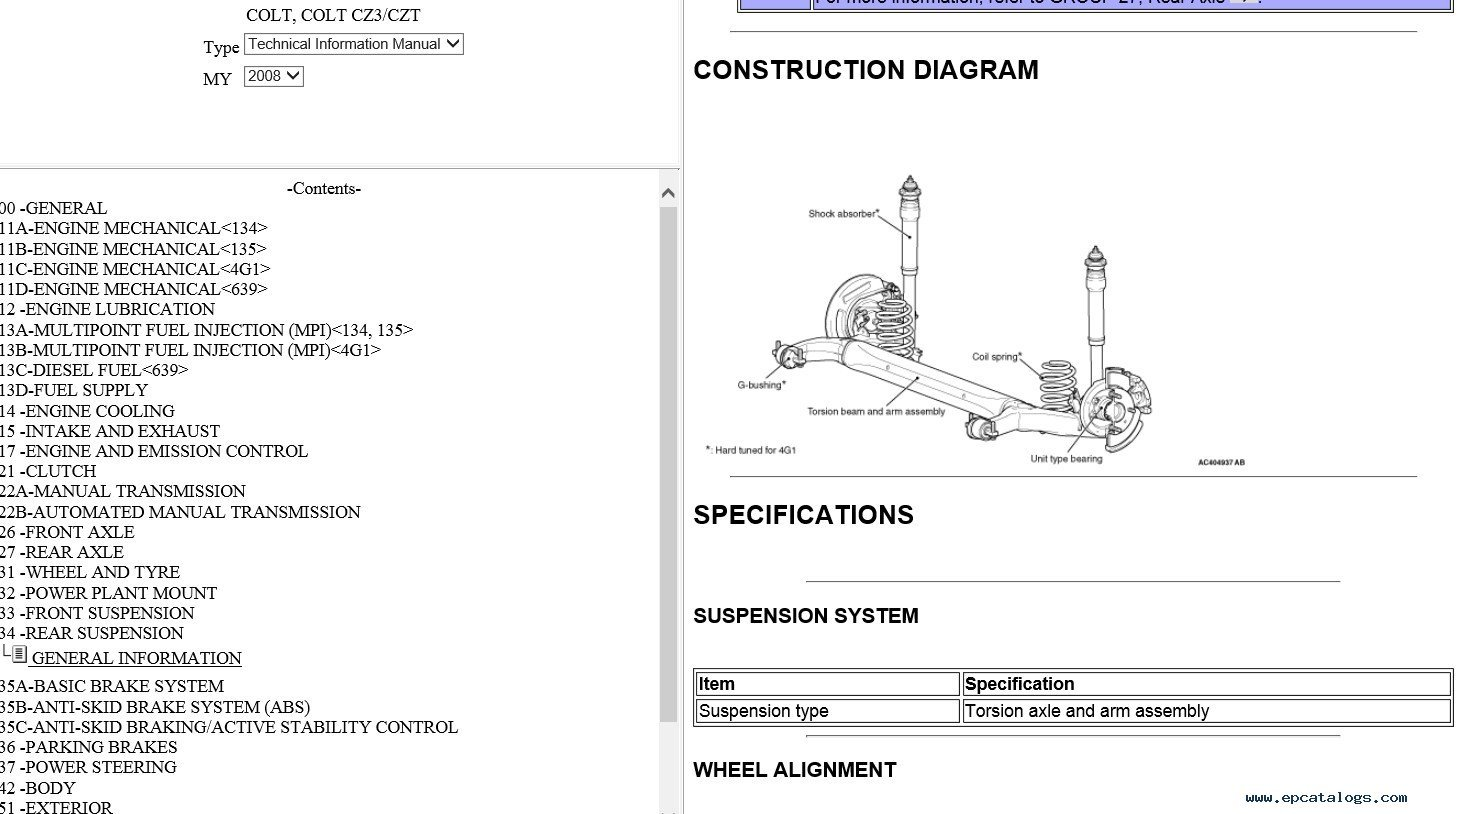 mitscolt2008 mitsubishi colt wiring diagram efcaviation com electrical wiring diagram mitsubishi colt at mifinder.co